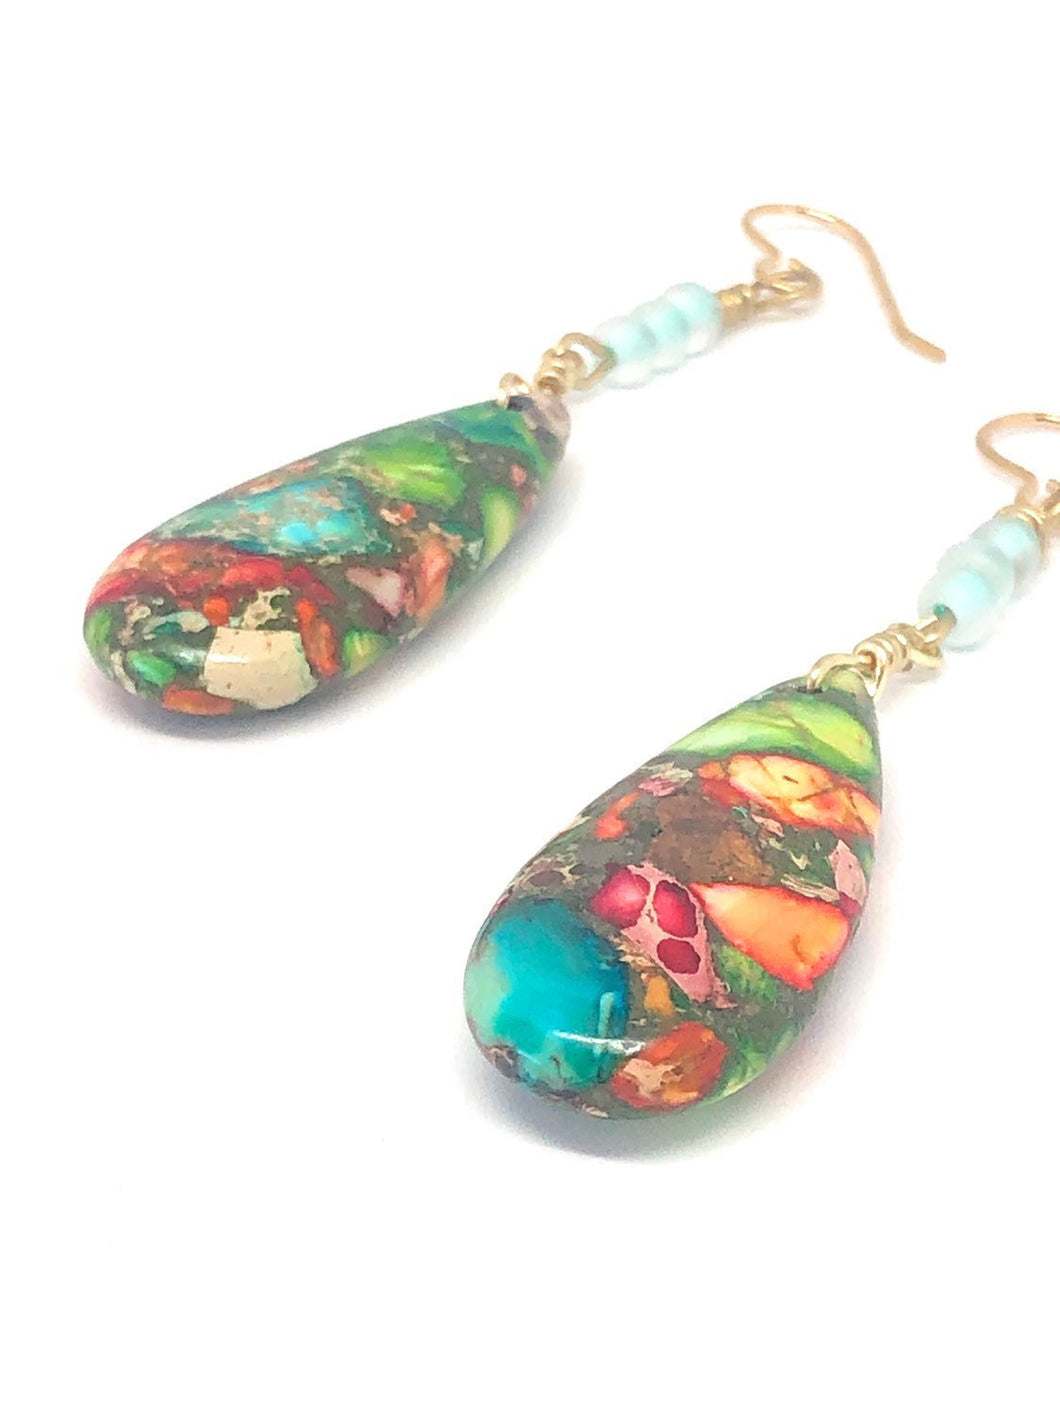 Stone Teardrop Earrings. Colorful Dangles with Frosted Teal Glass Beads. Boho Earrings.